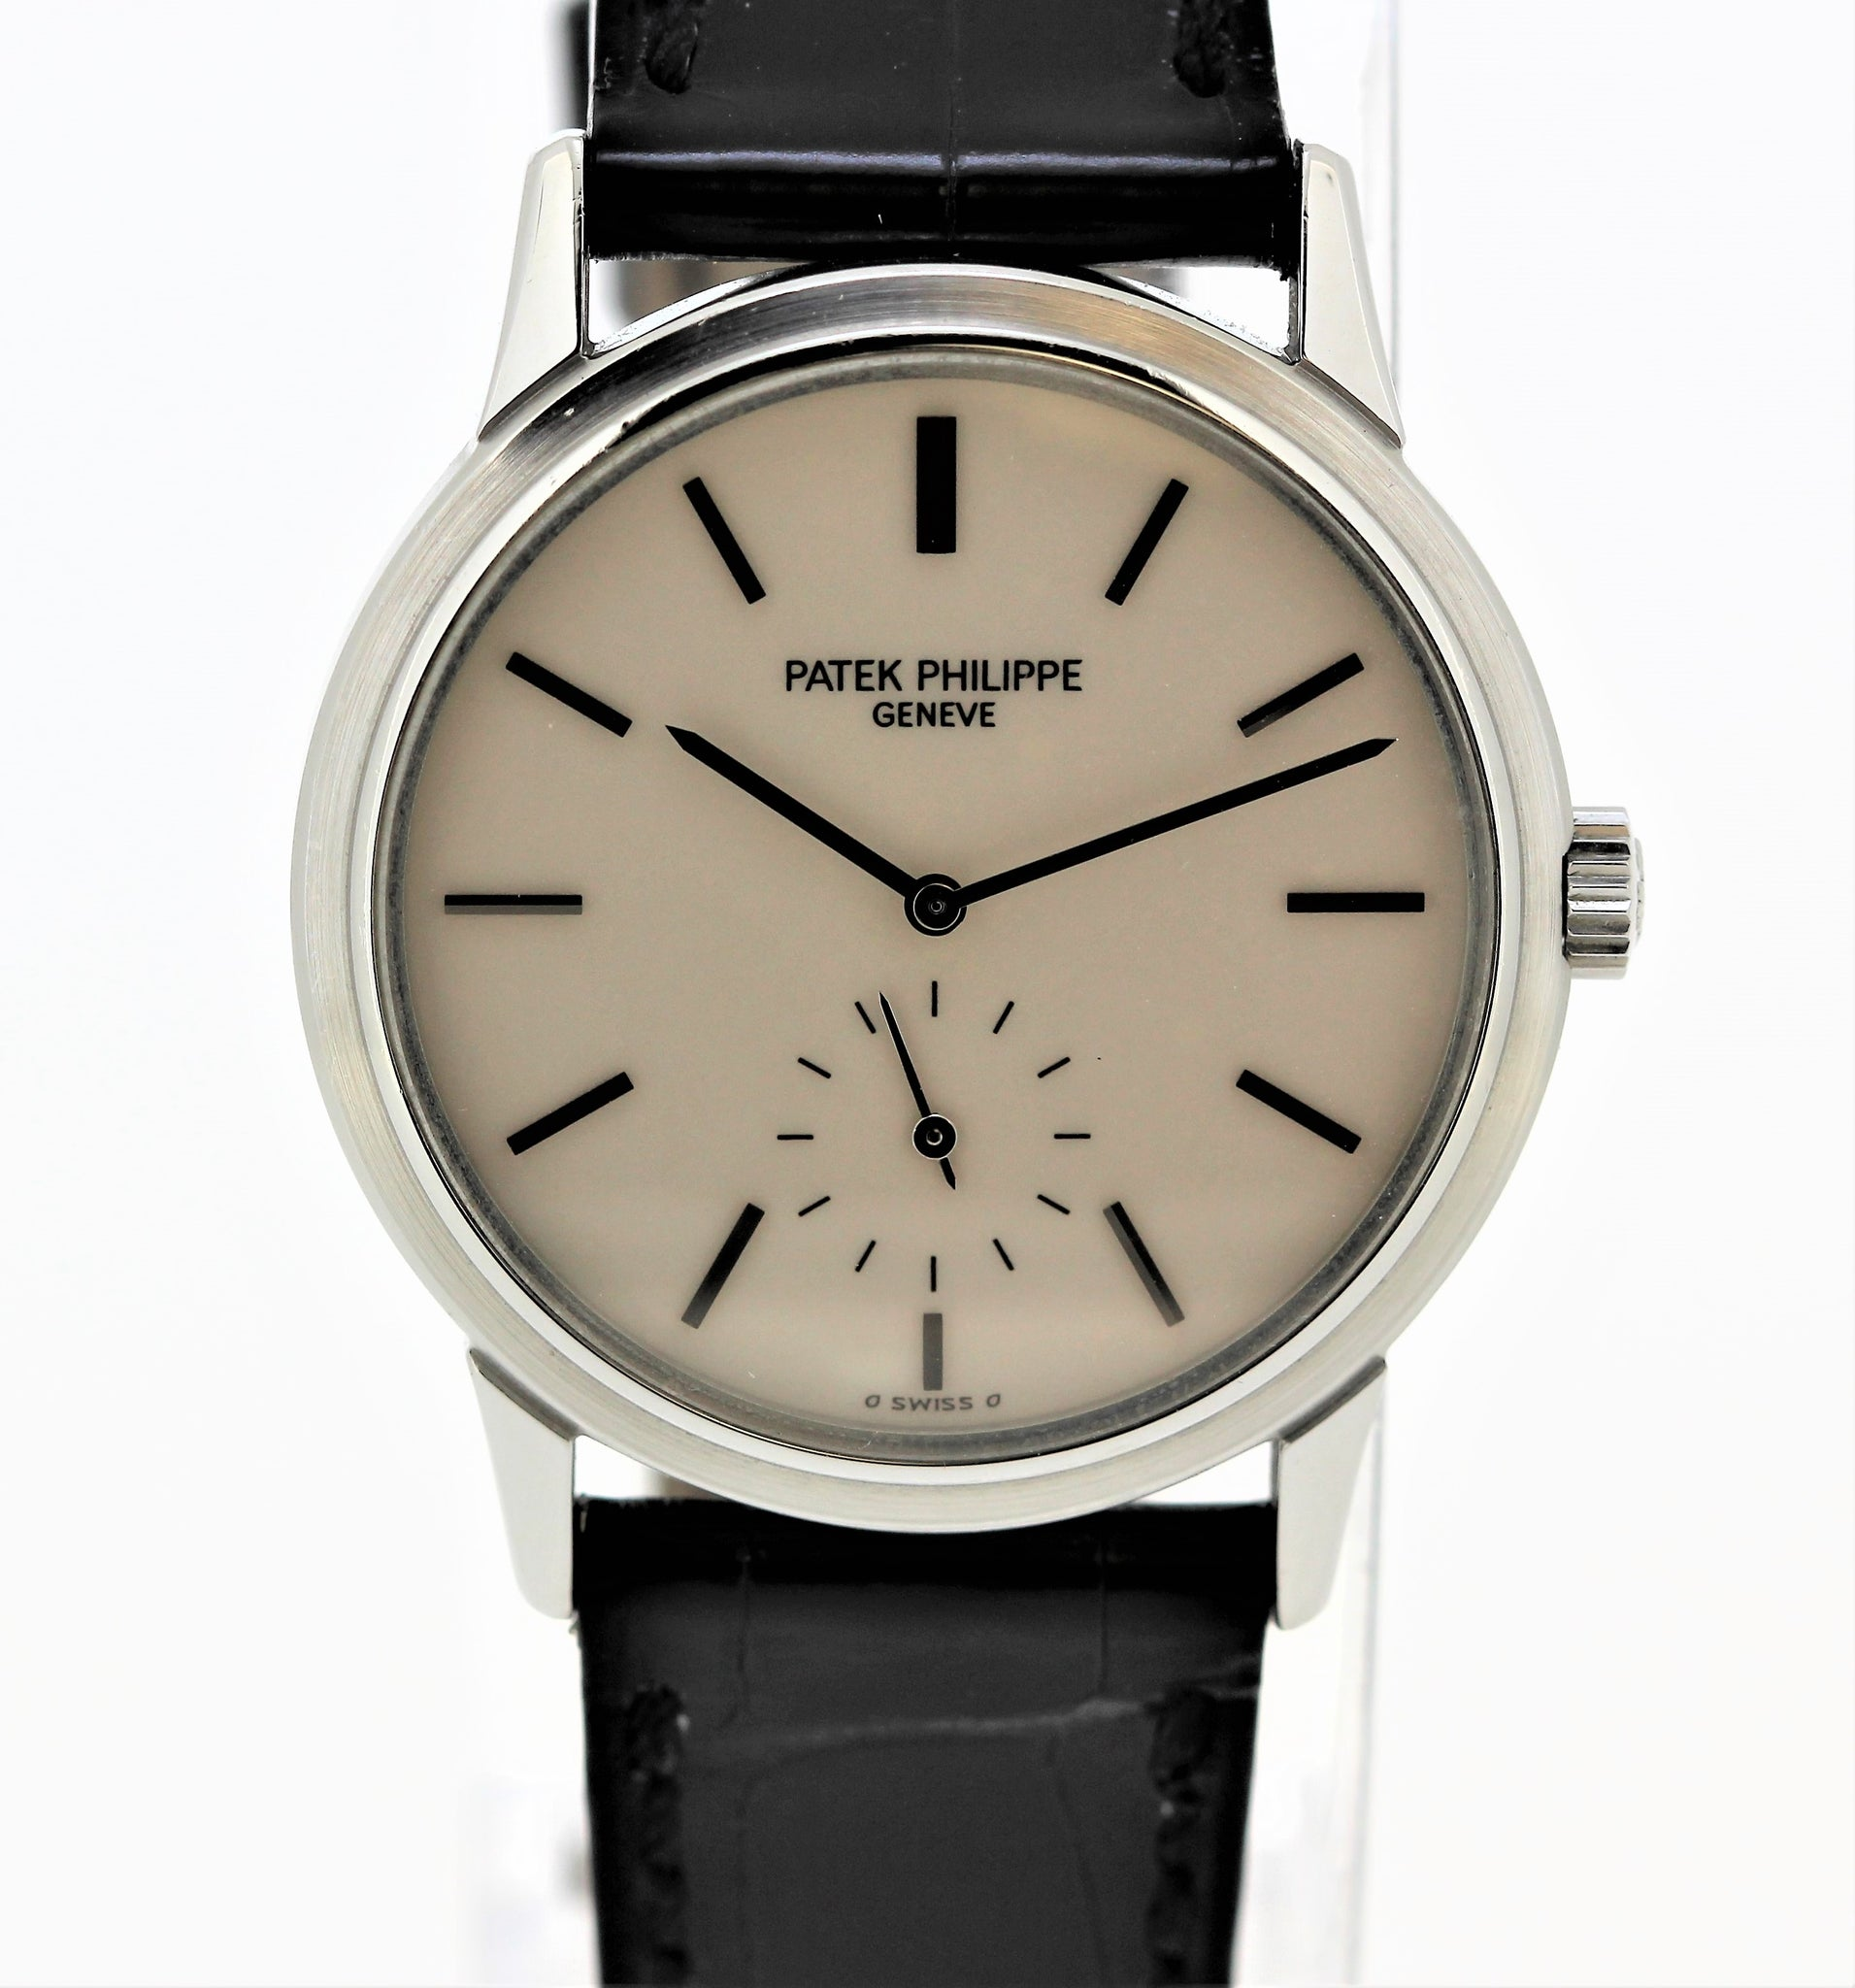 Patek Philippe 3718A ,  Stainless steel wristwatch, made for the Japanese market to commemorate the 150 Th Anniversary of Patek Philippe in 1989.